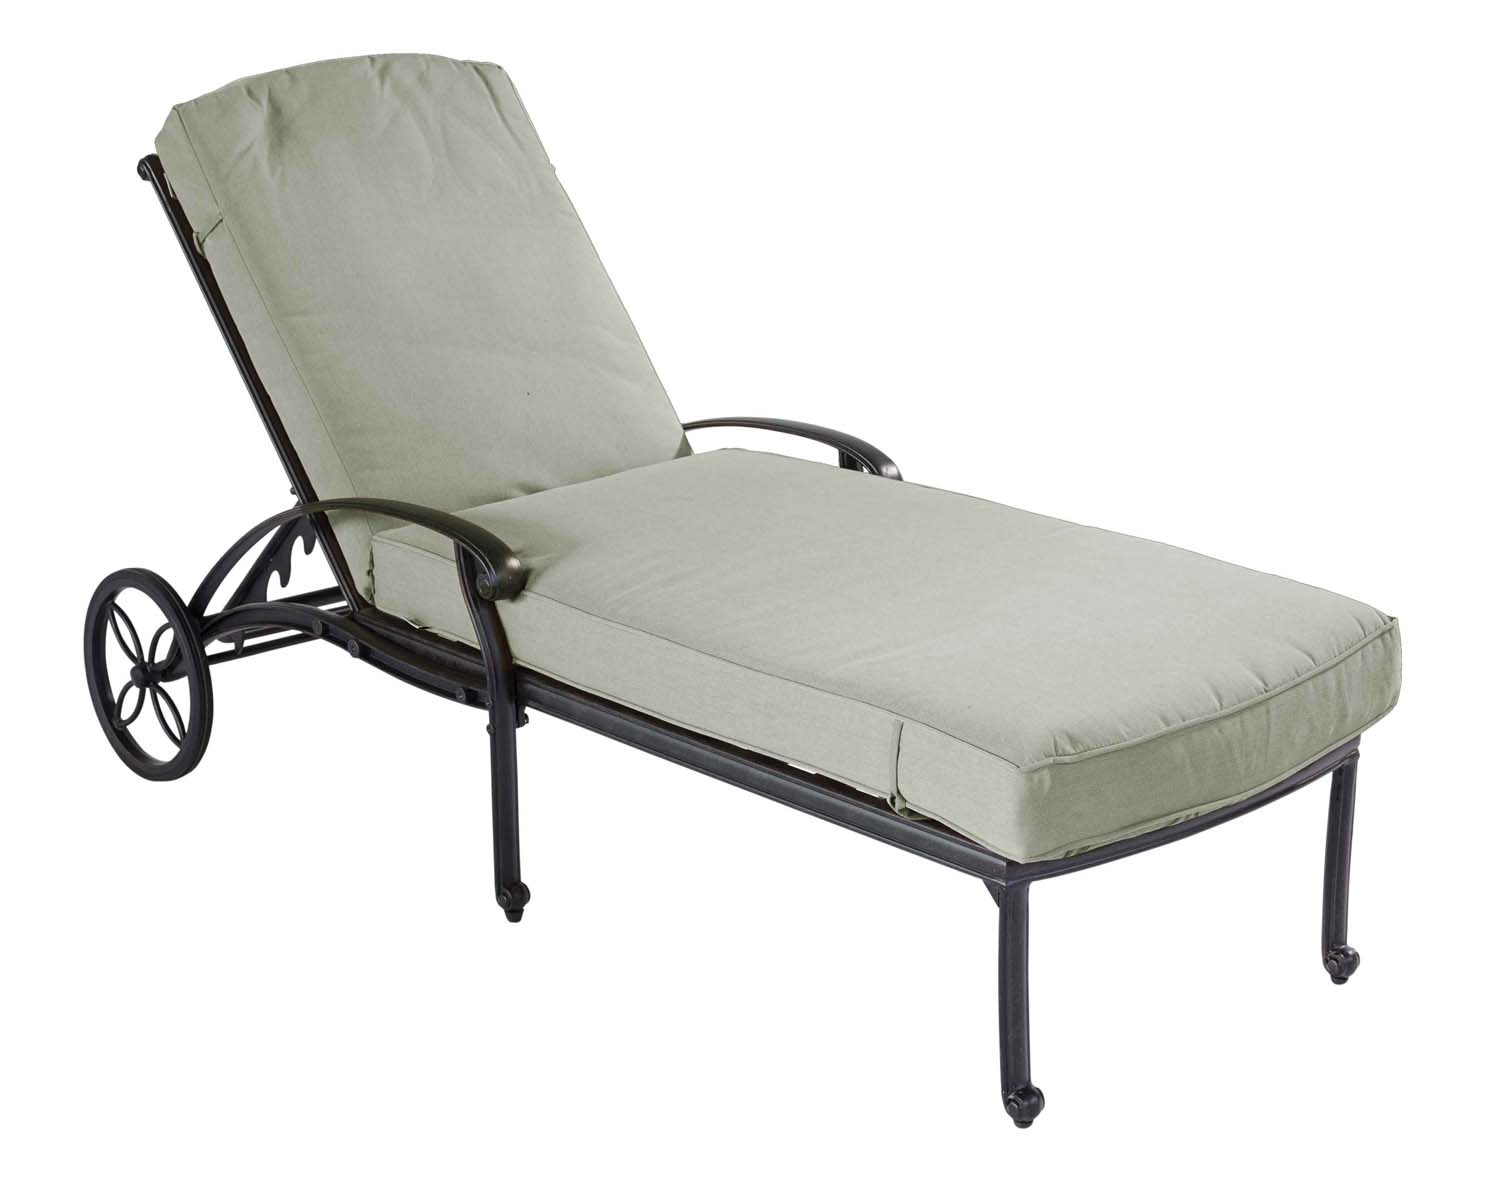 https://www.firstfurniture.co.uk/pub/media/catalog/product/c/a/capri_lounger_wheatgrass.jpg